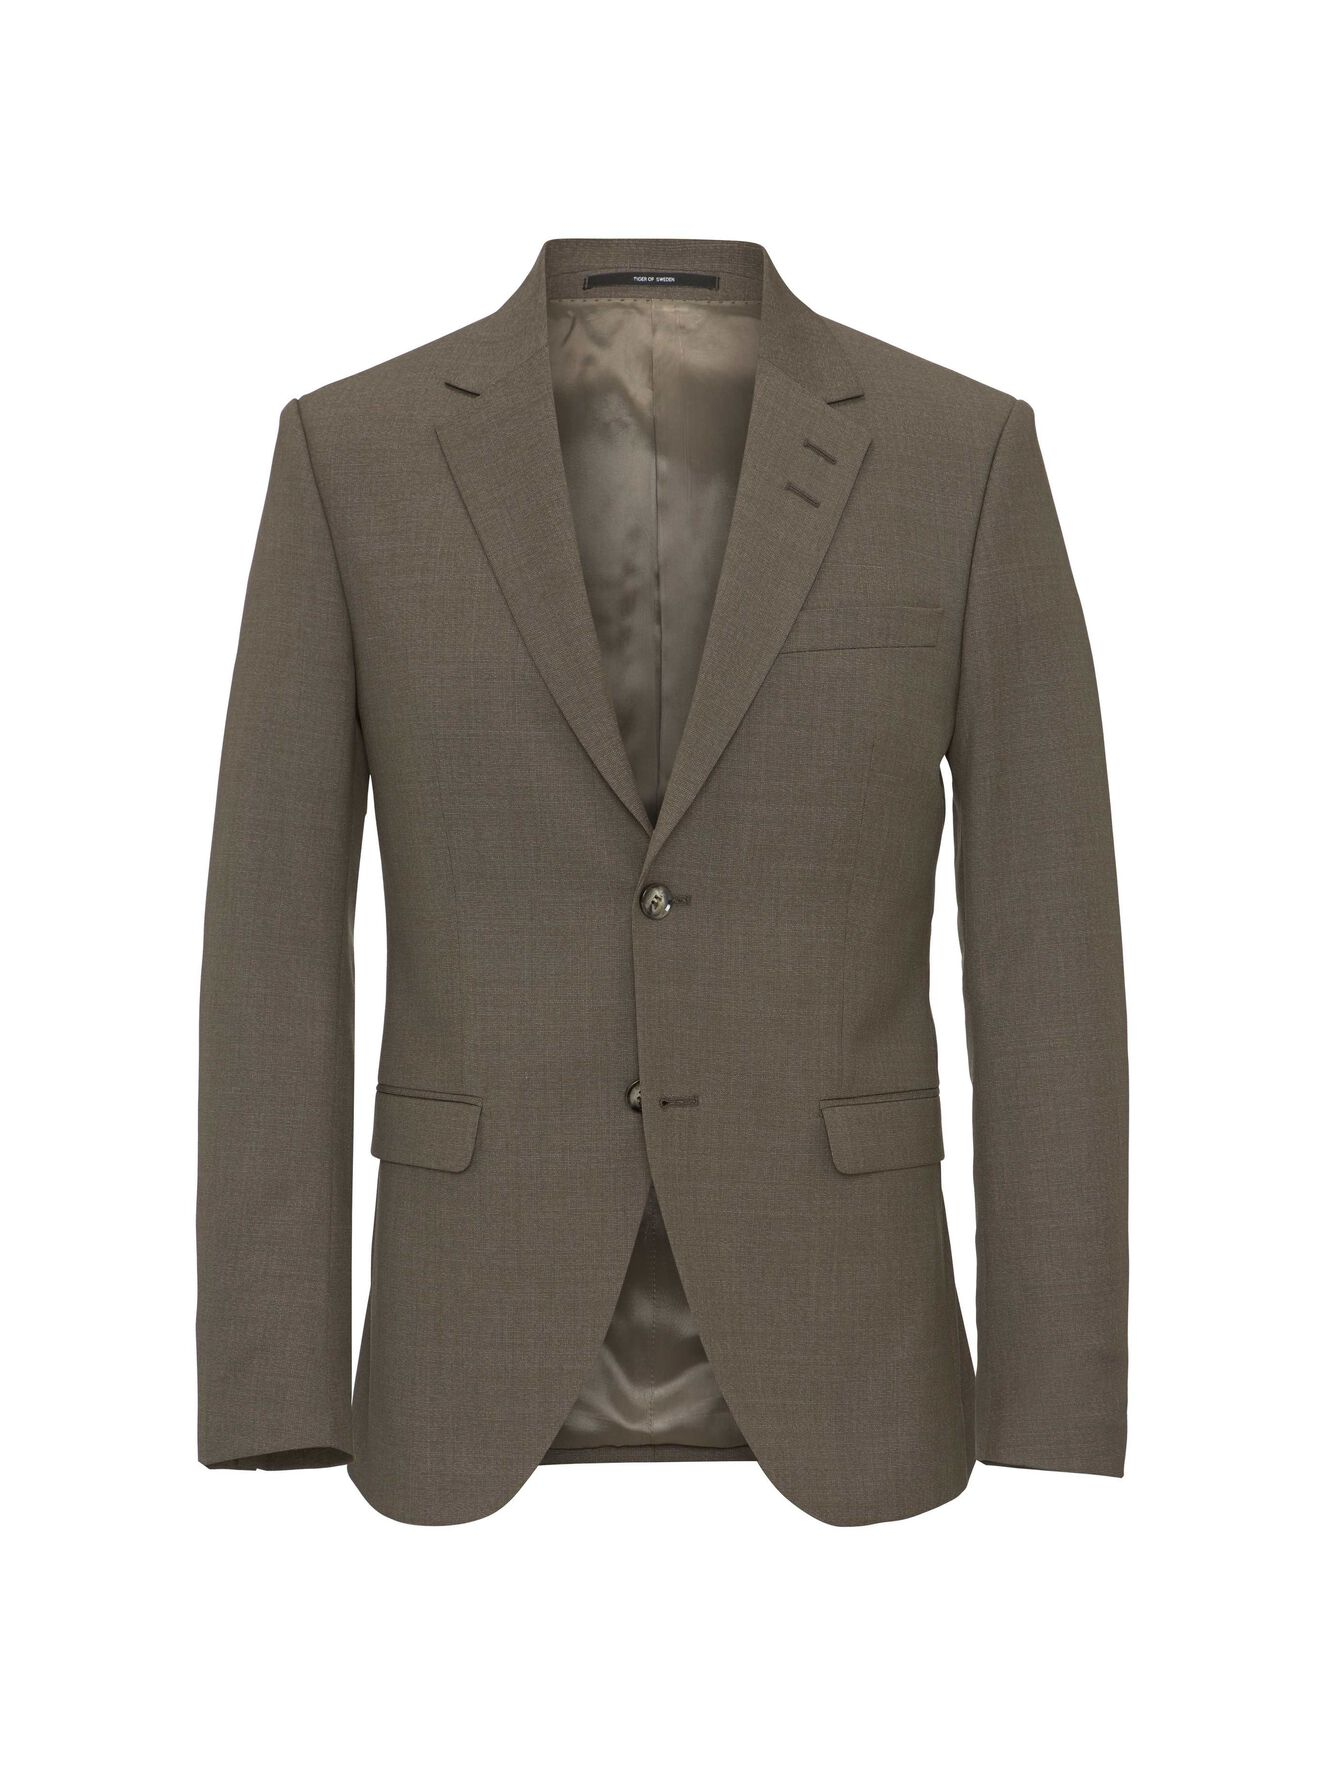 Lamonte 3 Blazer in Caribou from Tiger of Sweden